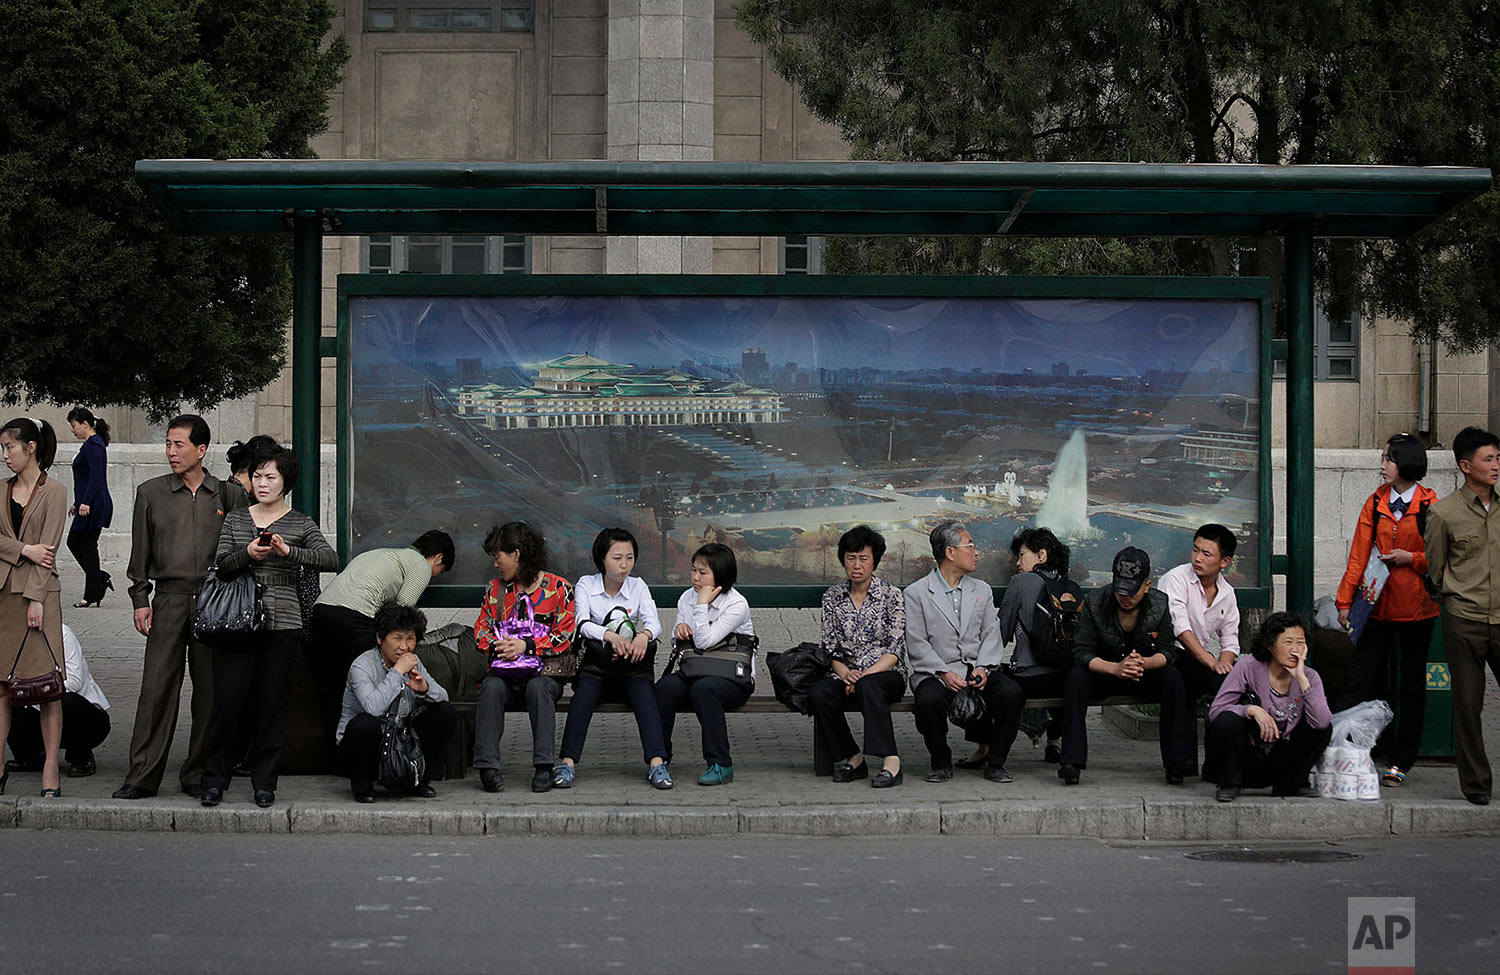 Commuters wait for a trolley bus to arrive in downtown Pyongyang, North Korea, on May 3, 2015. (AP Photo/Wong Maye-E)